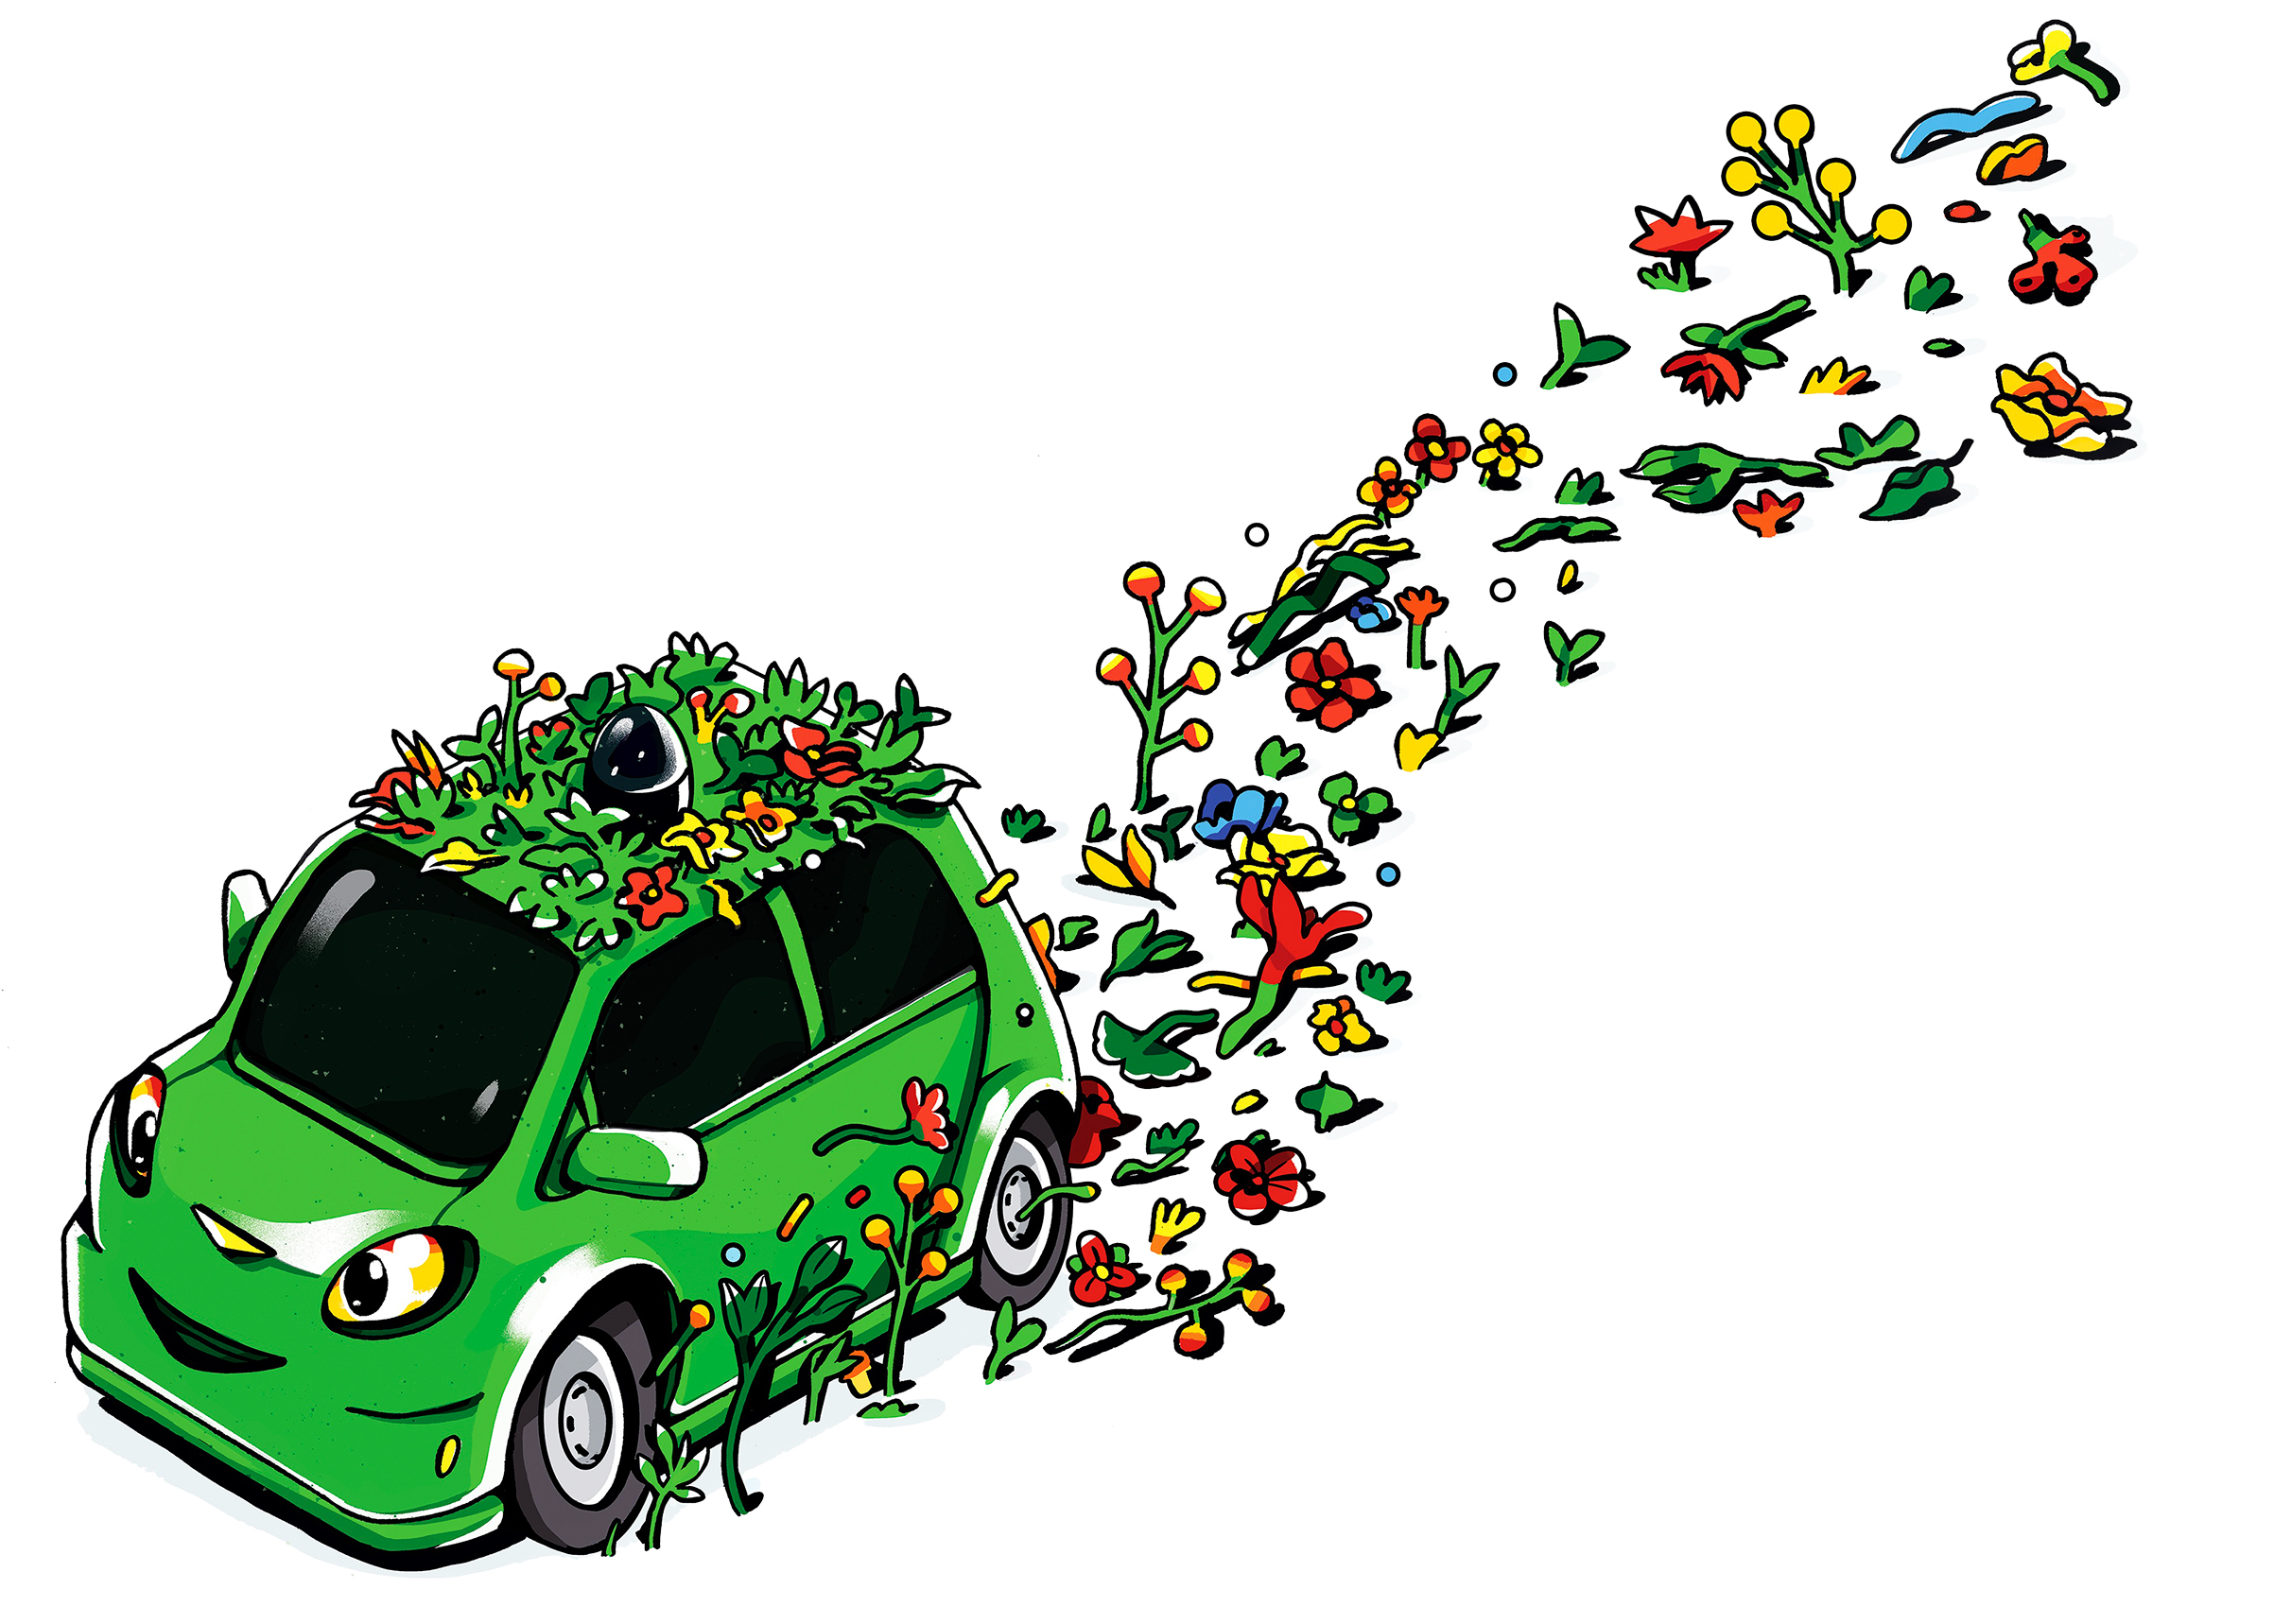 Fuel efficient cars clipart svg black and white Why Self-Driving Cars Might Not Decrease Fuel Consumption | Time svg black and white